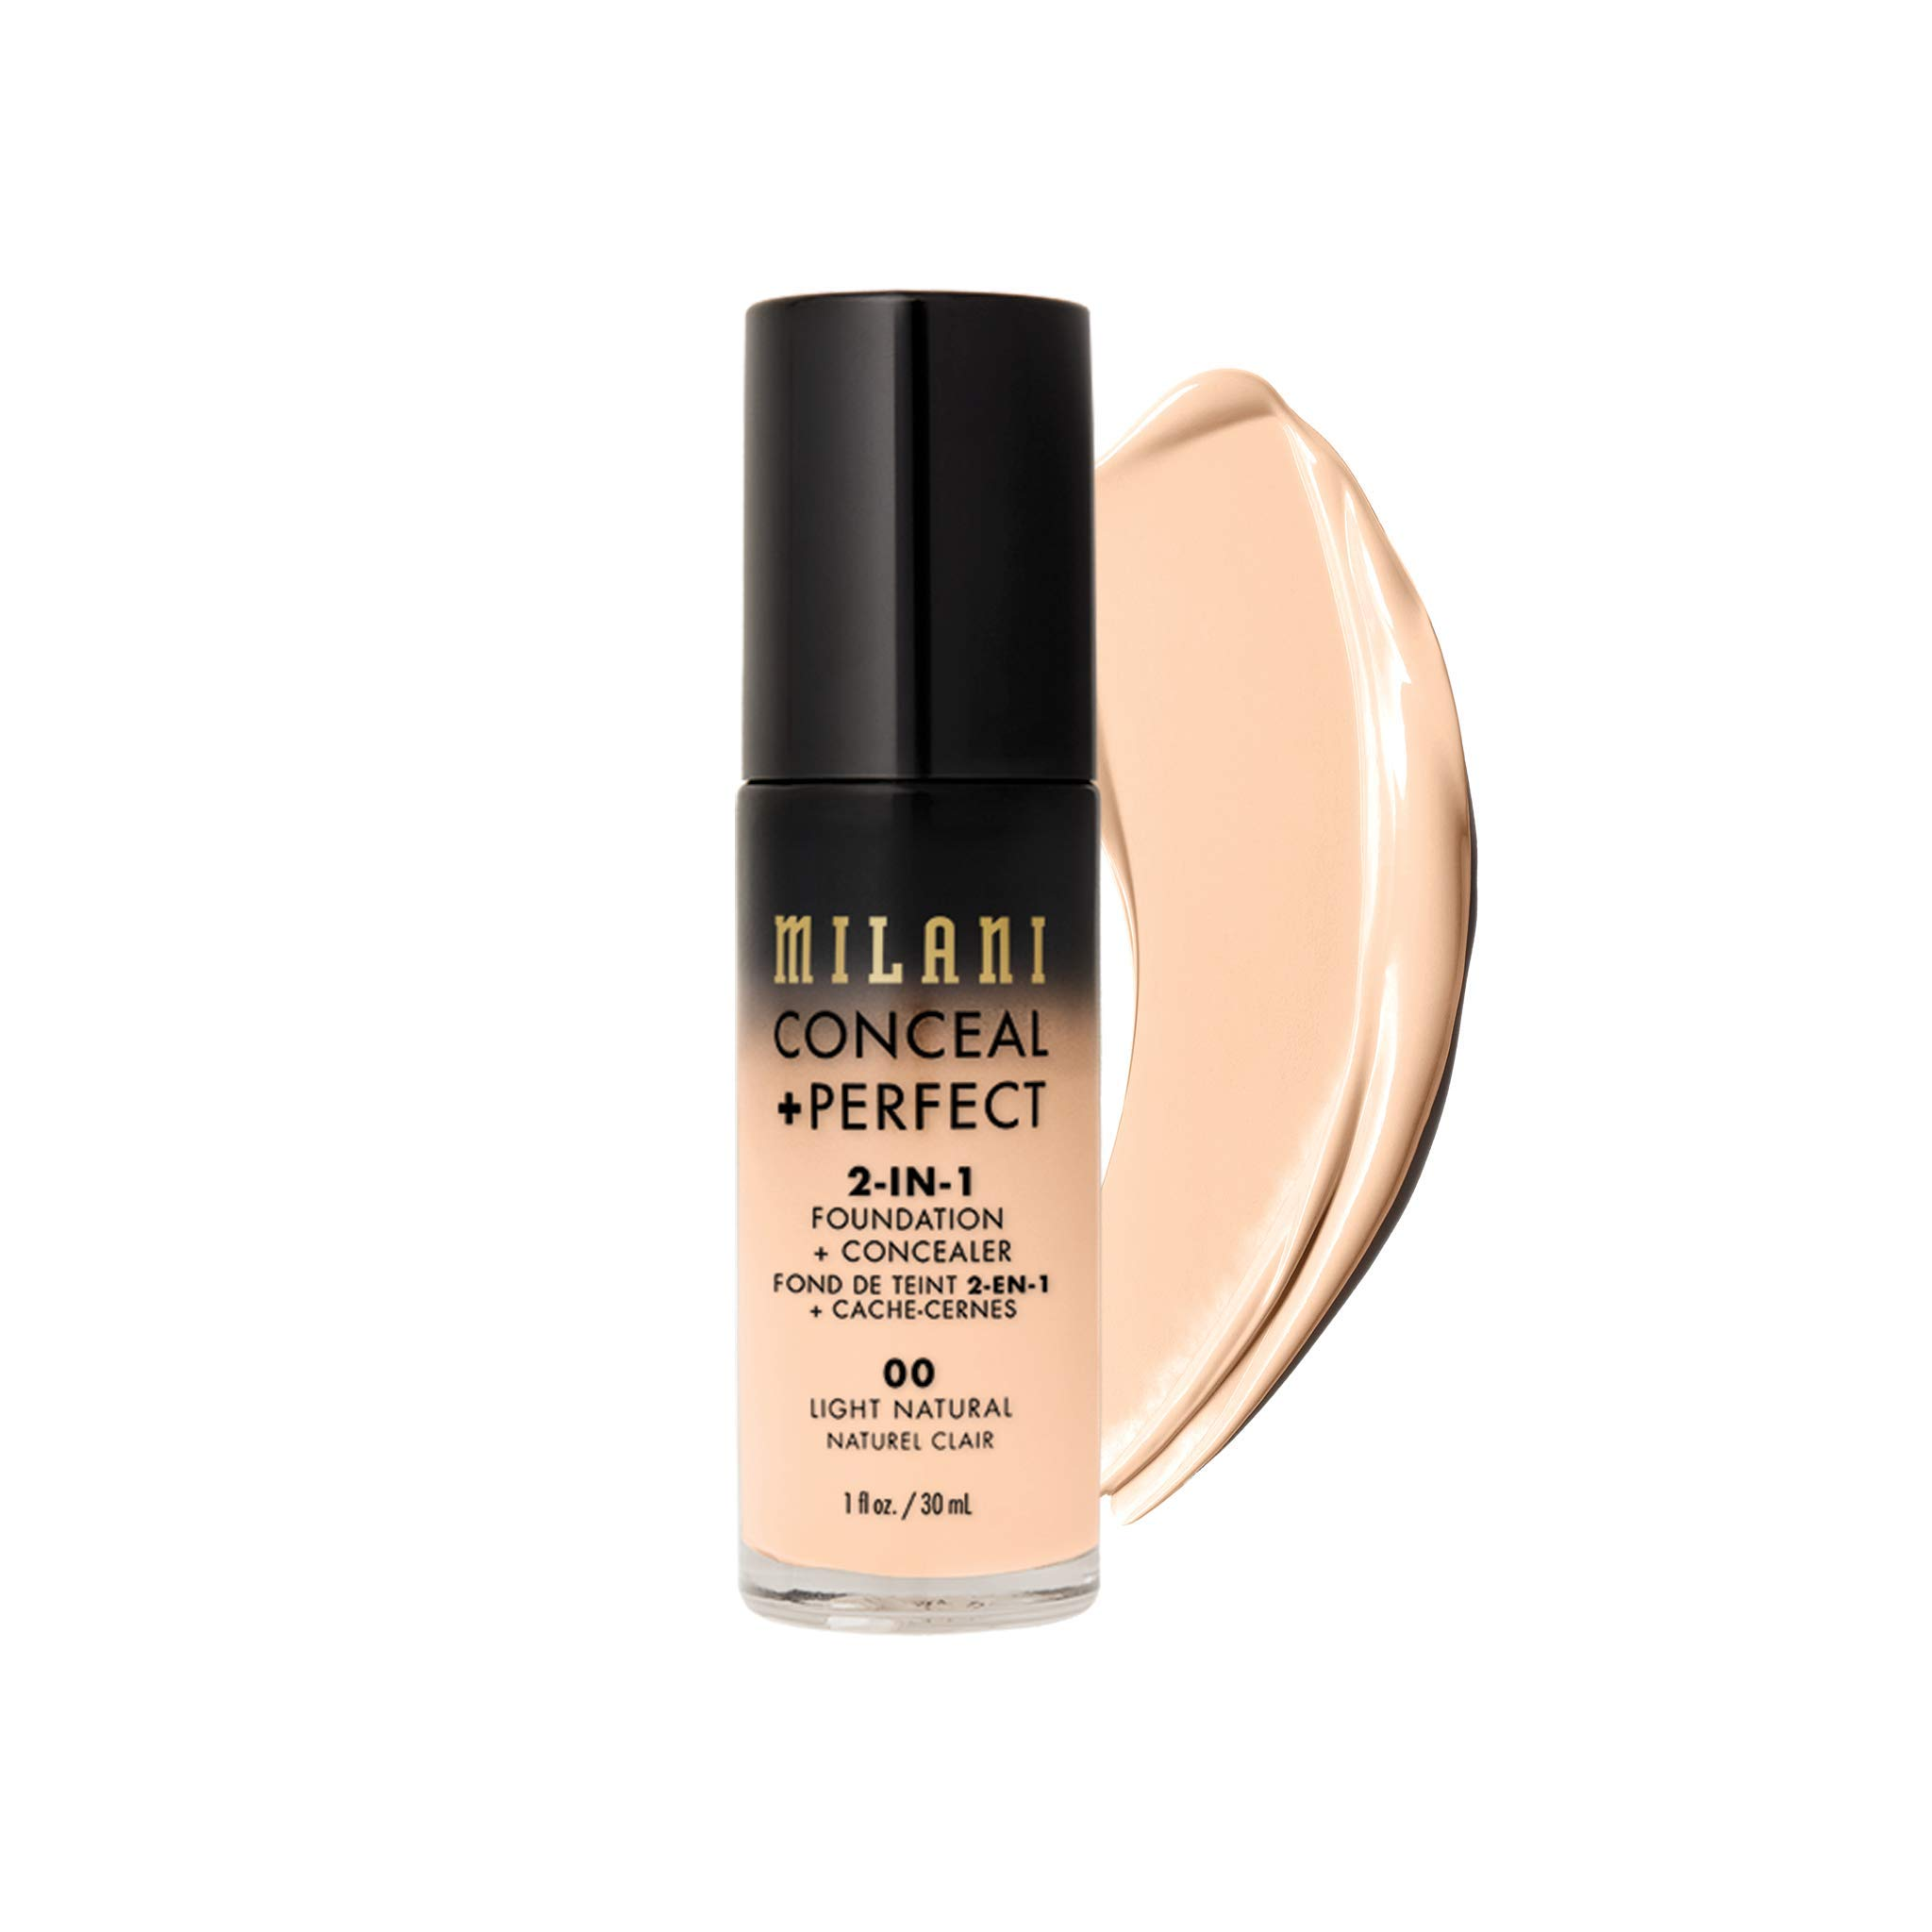 MILANI Conceal + Perfect 2 In 1 Foundation + Concealer Light Natural